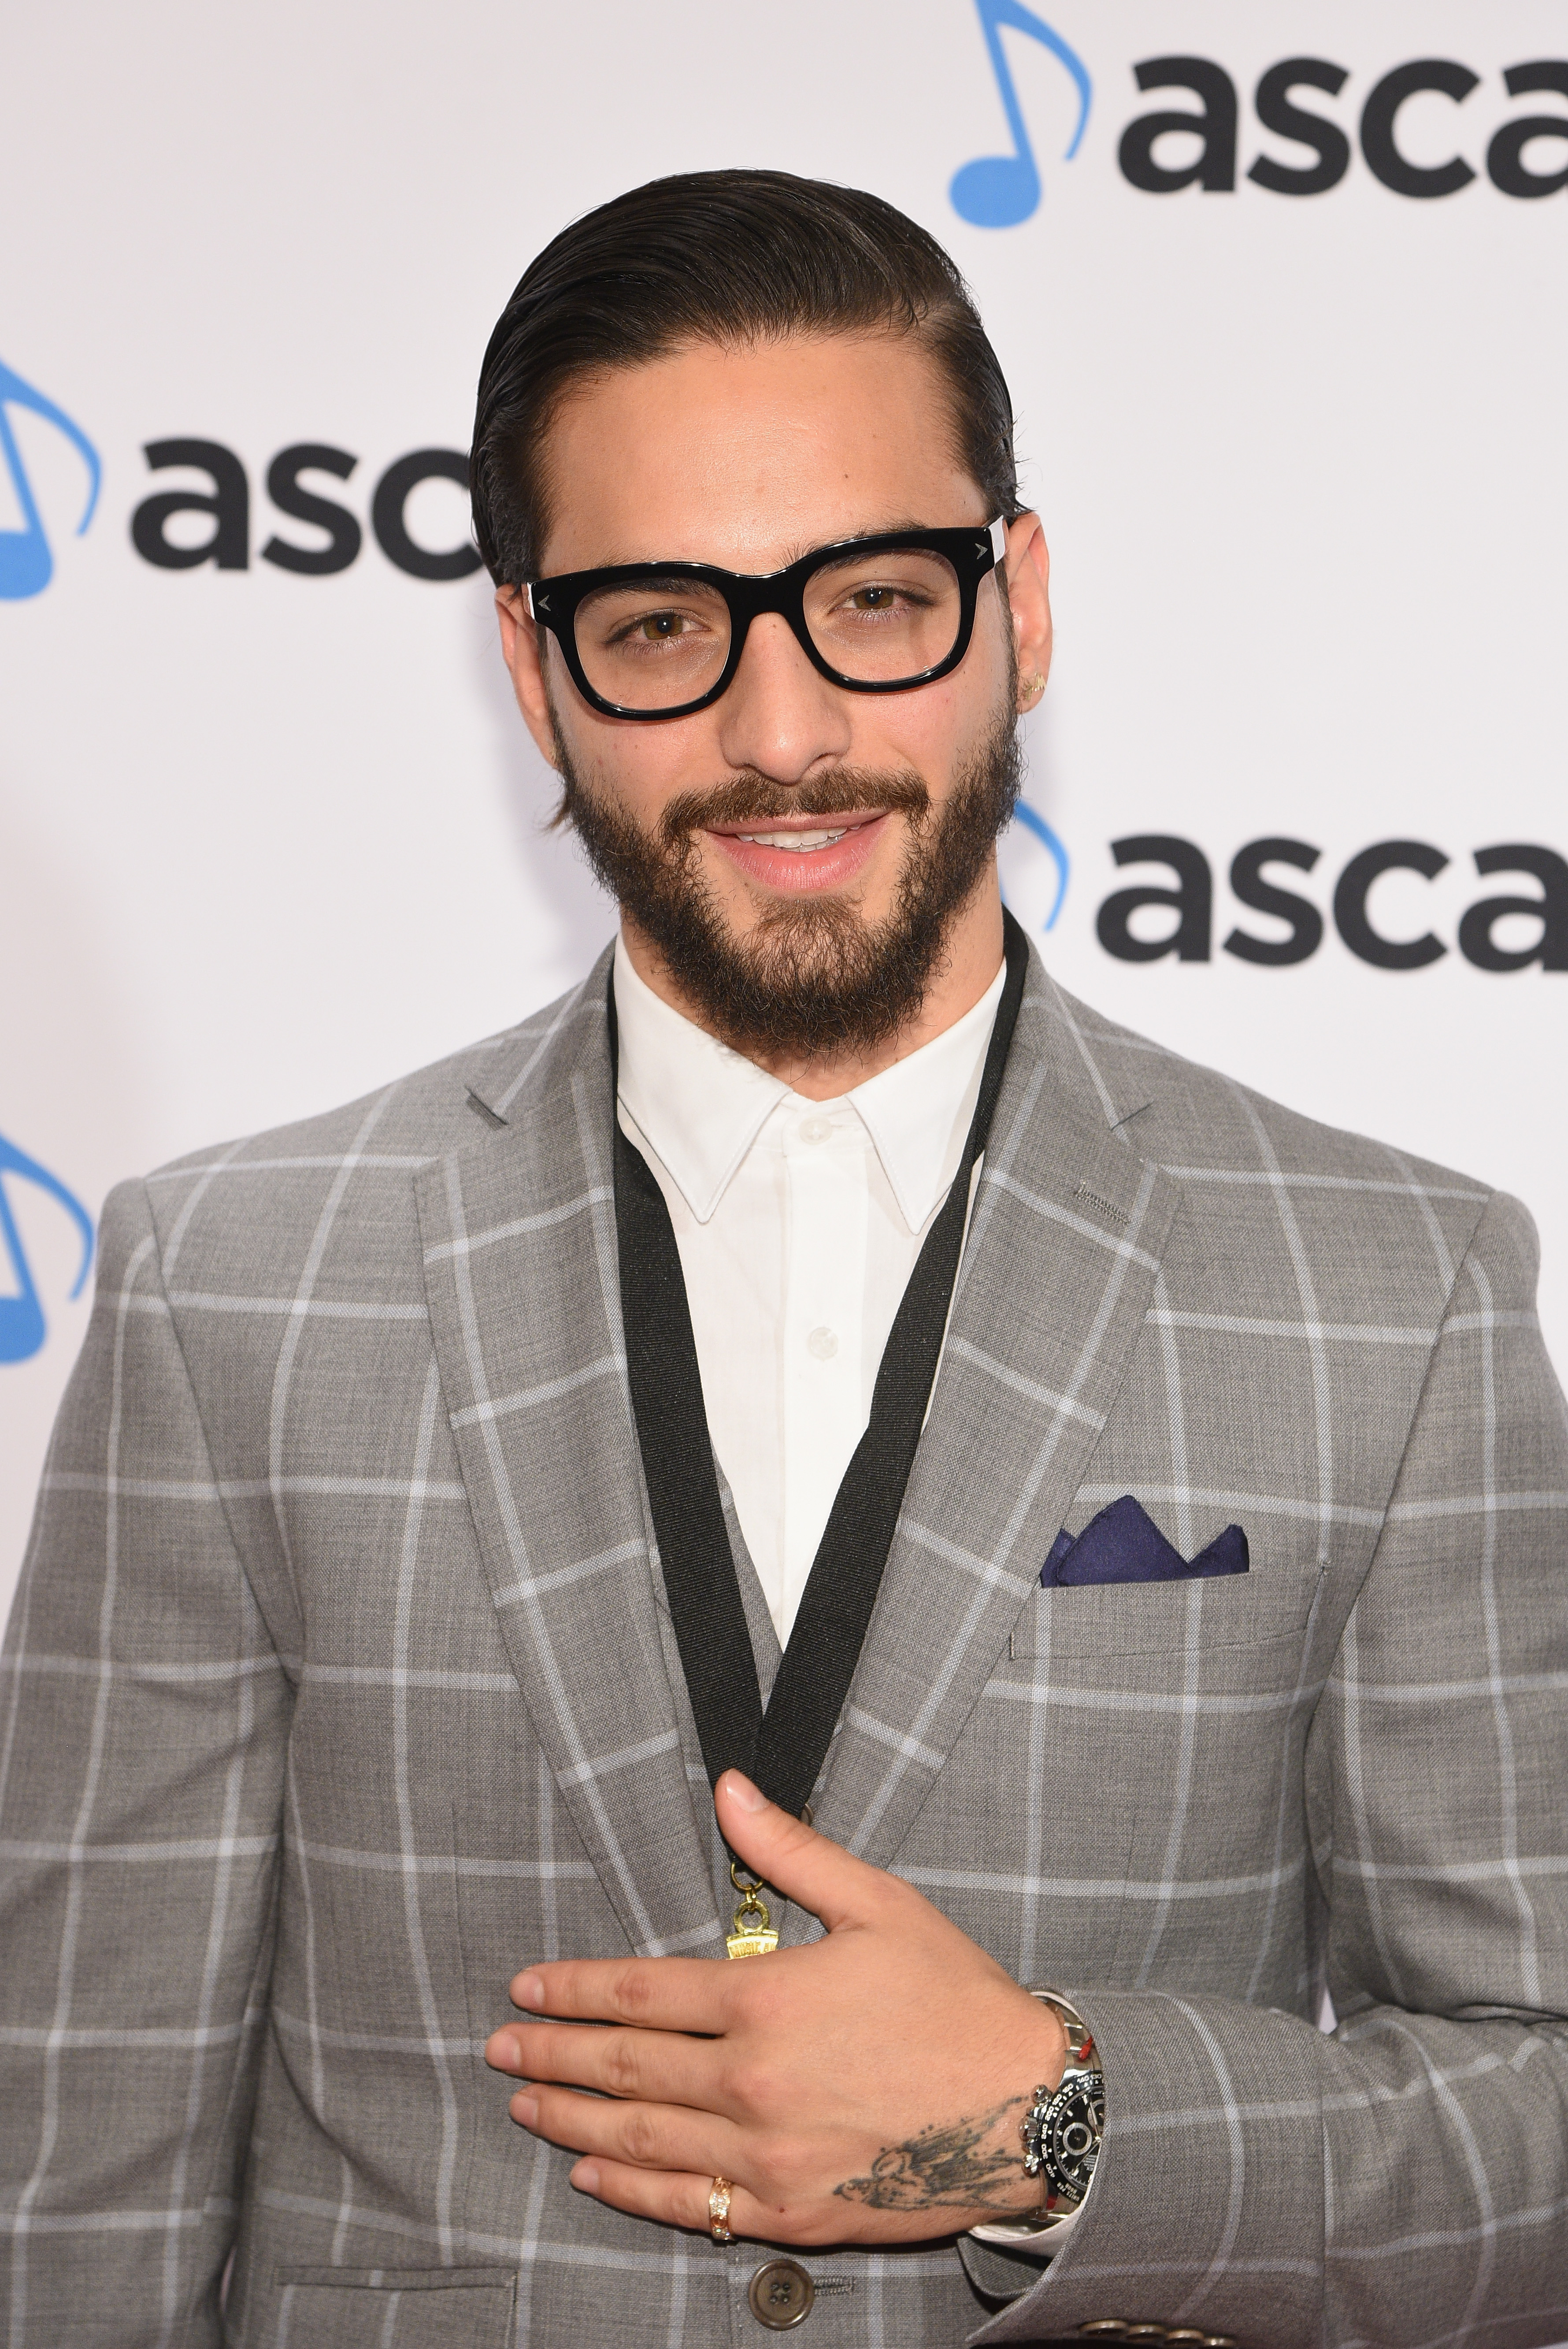 ASCAP 2018 Latin Awards - Arrivals